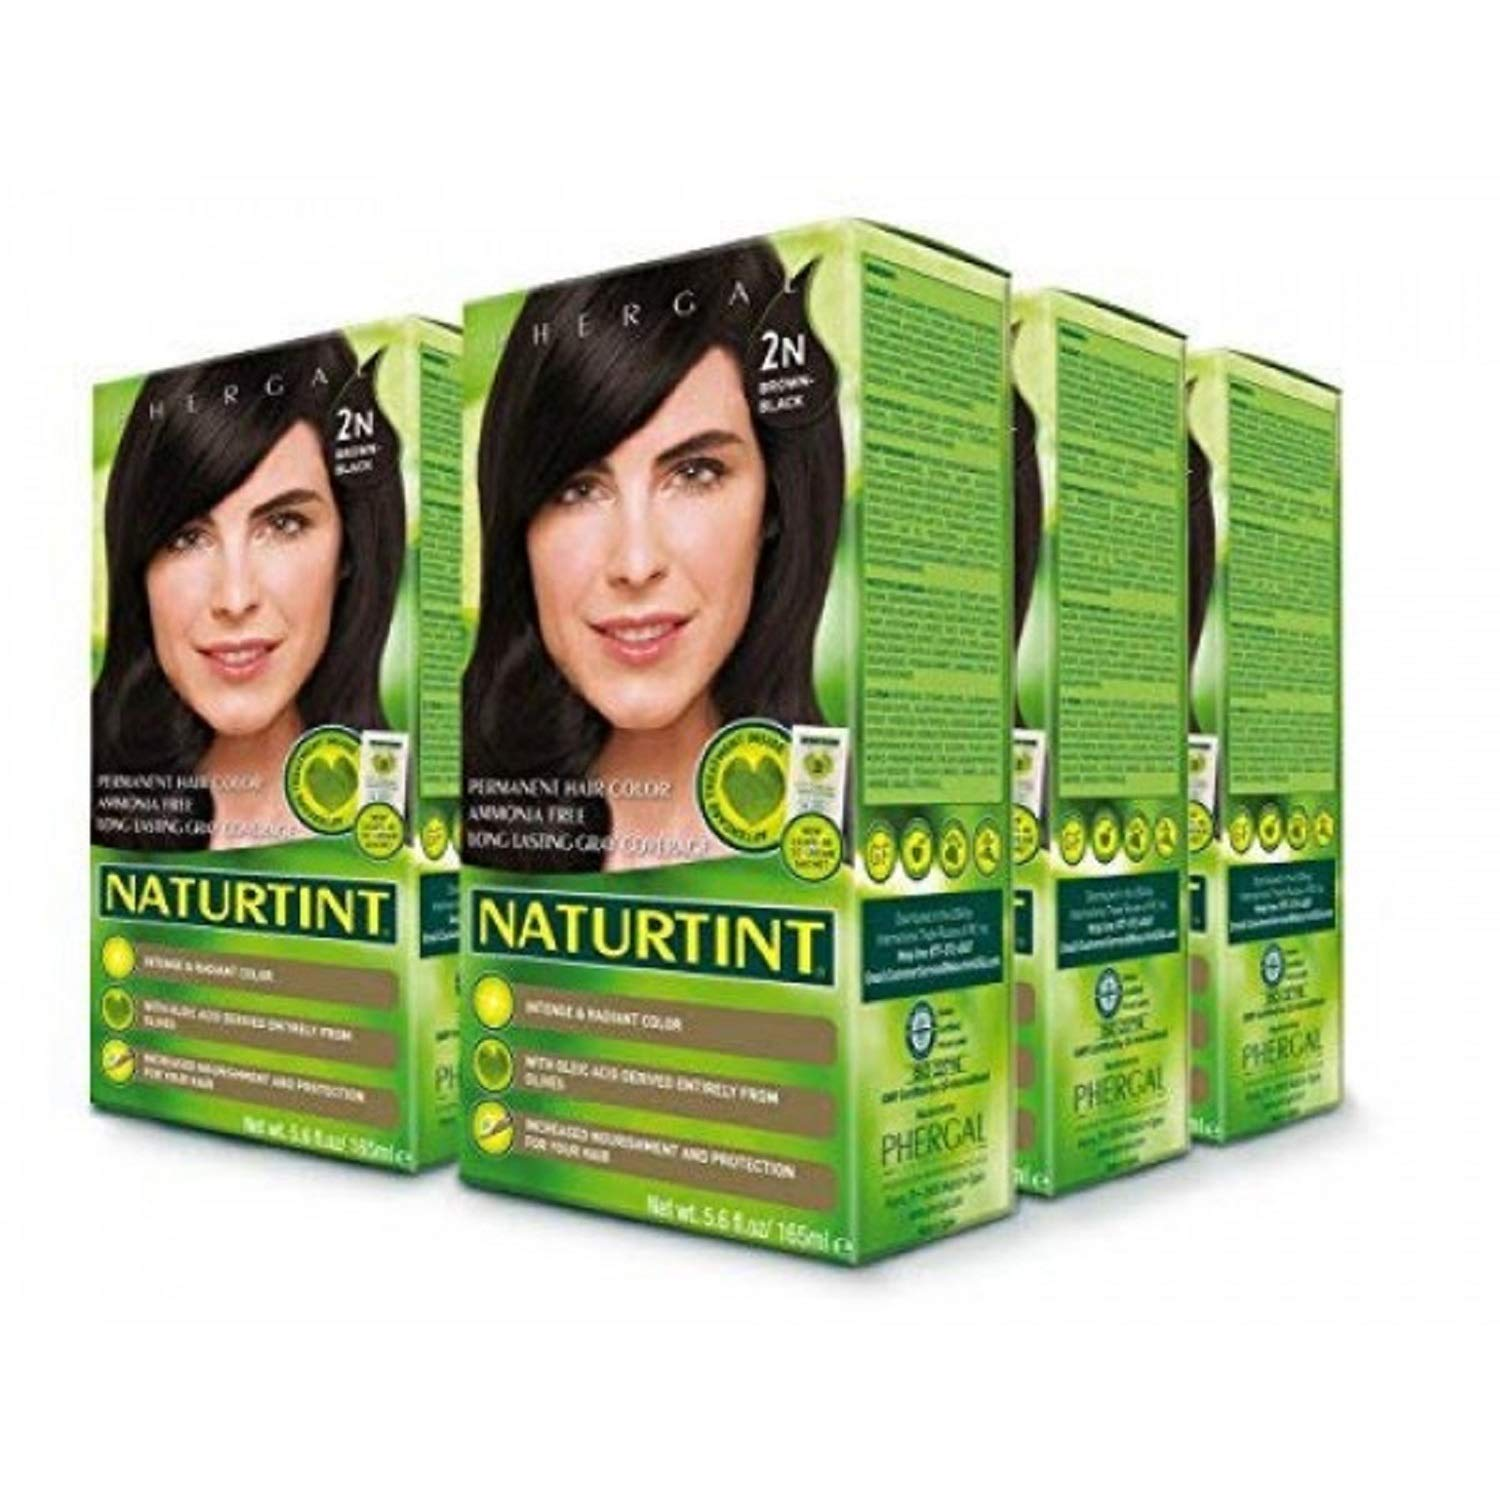 Naturtint Permanent Hair Color 2N Brown Black (Pack of 6), Ammonia Free, Vegan, Cruelty Free, up to 100% Gray Coverage, Long Lasting Results